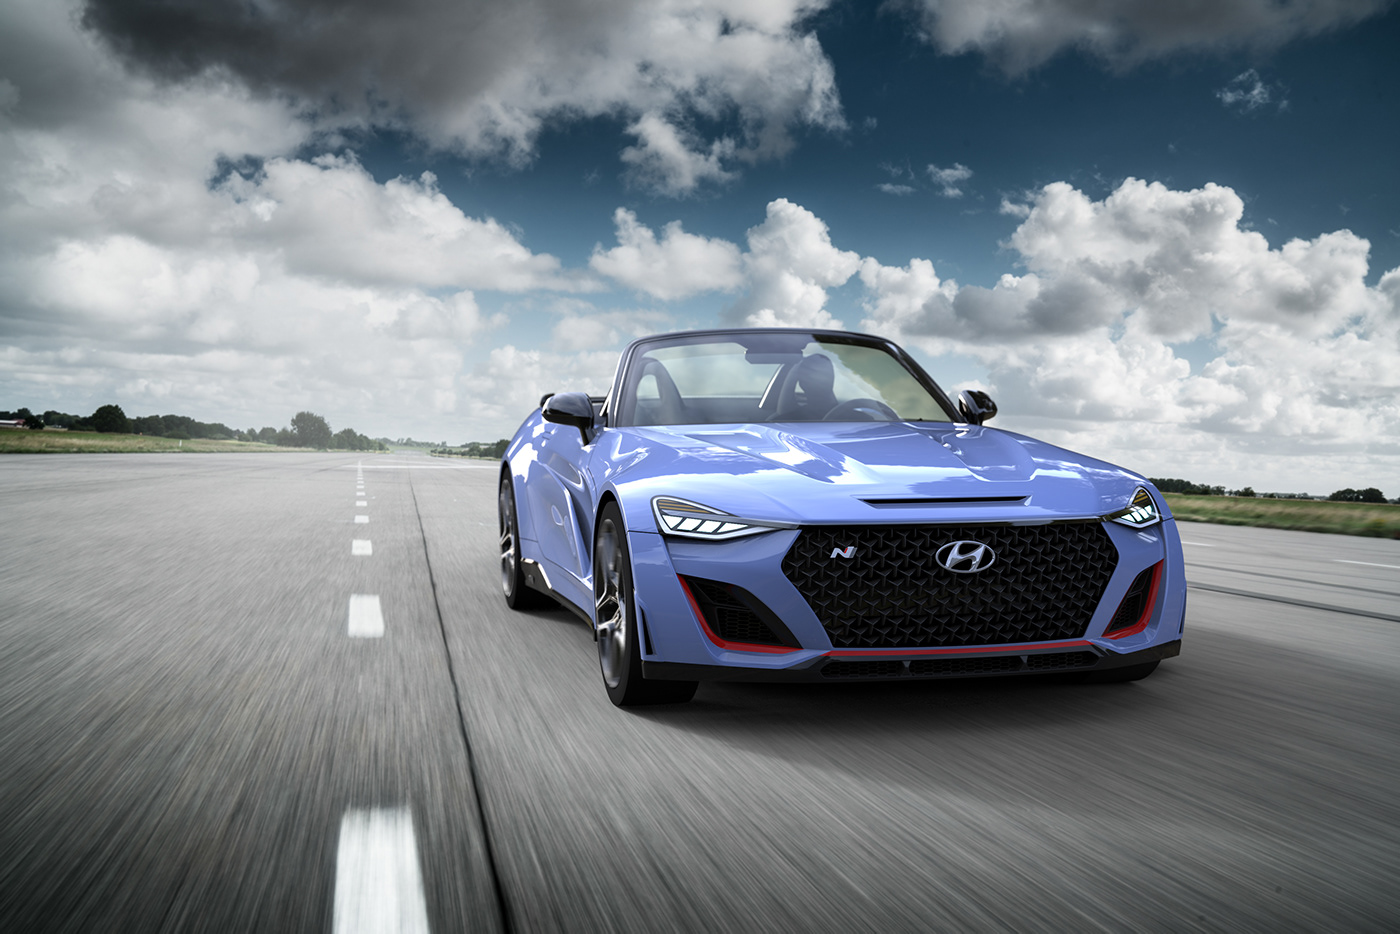 Hyundai N Roadster renderings (2)